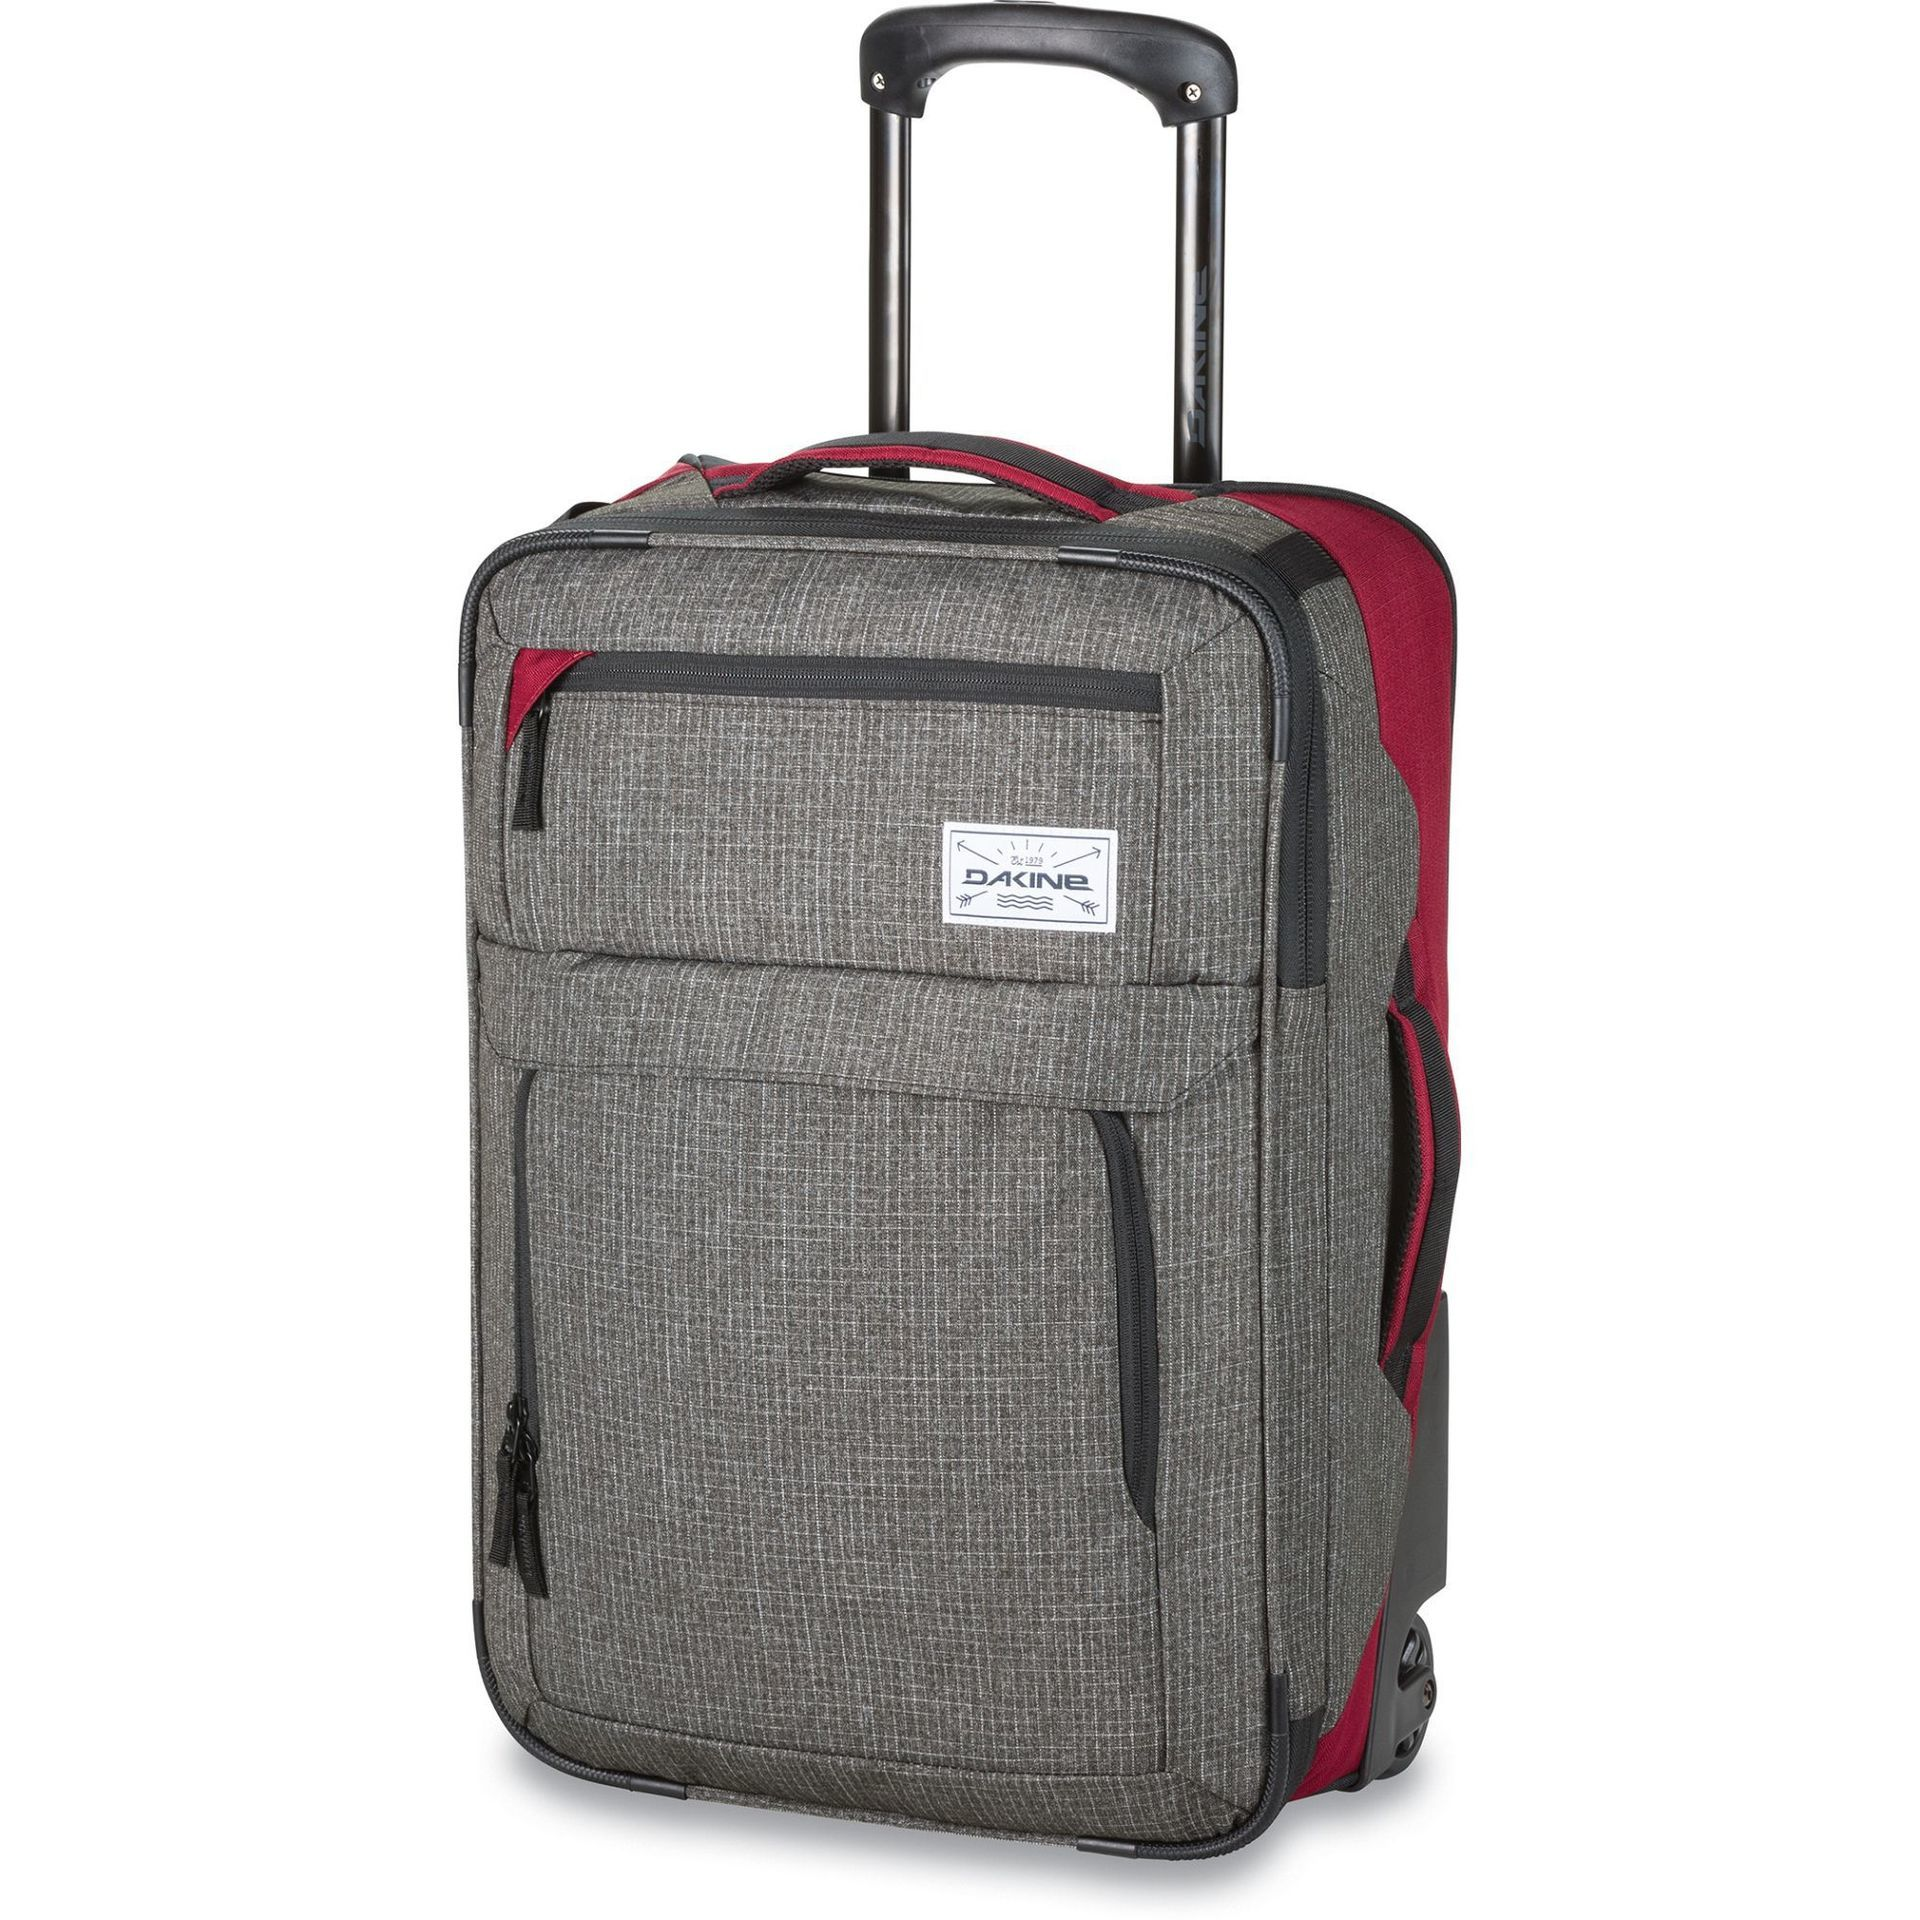 TORBA PODRÓŻNA DAKINE CARRY ON ROLLER 40 L 3